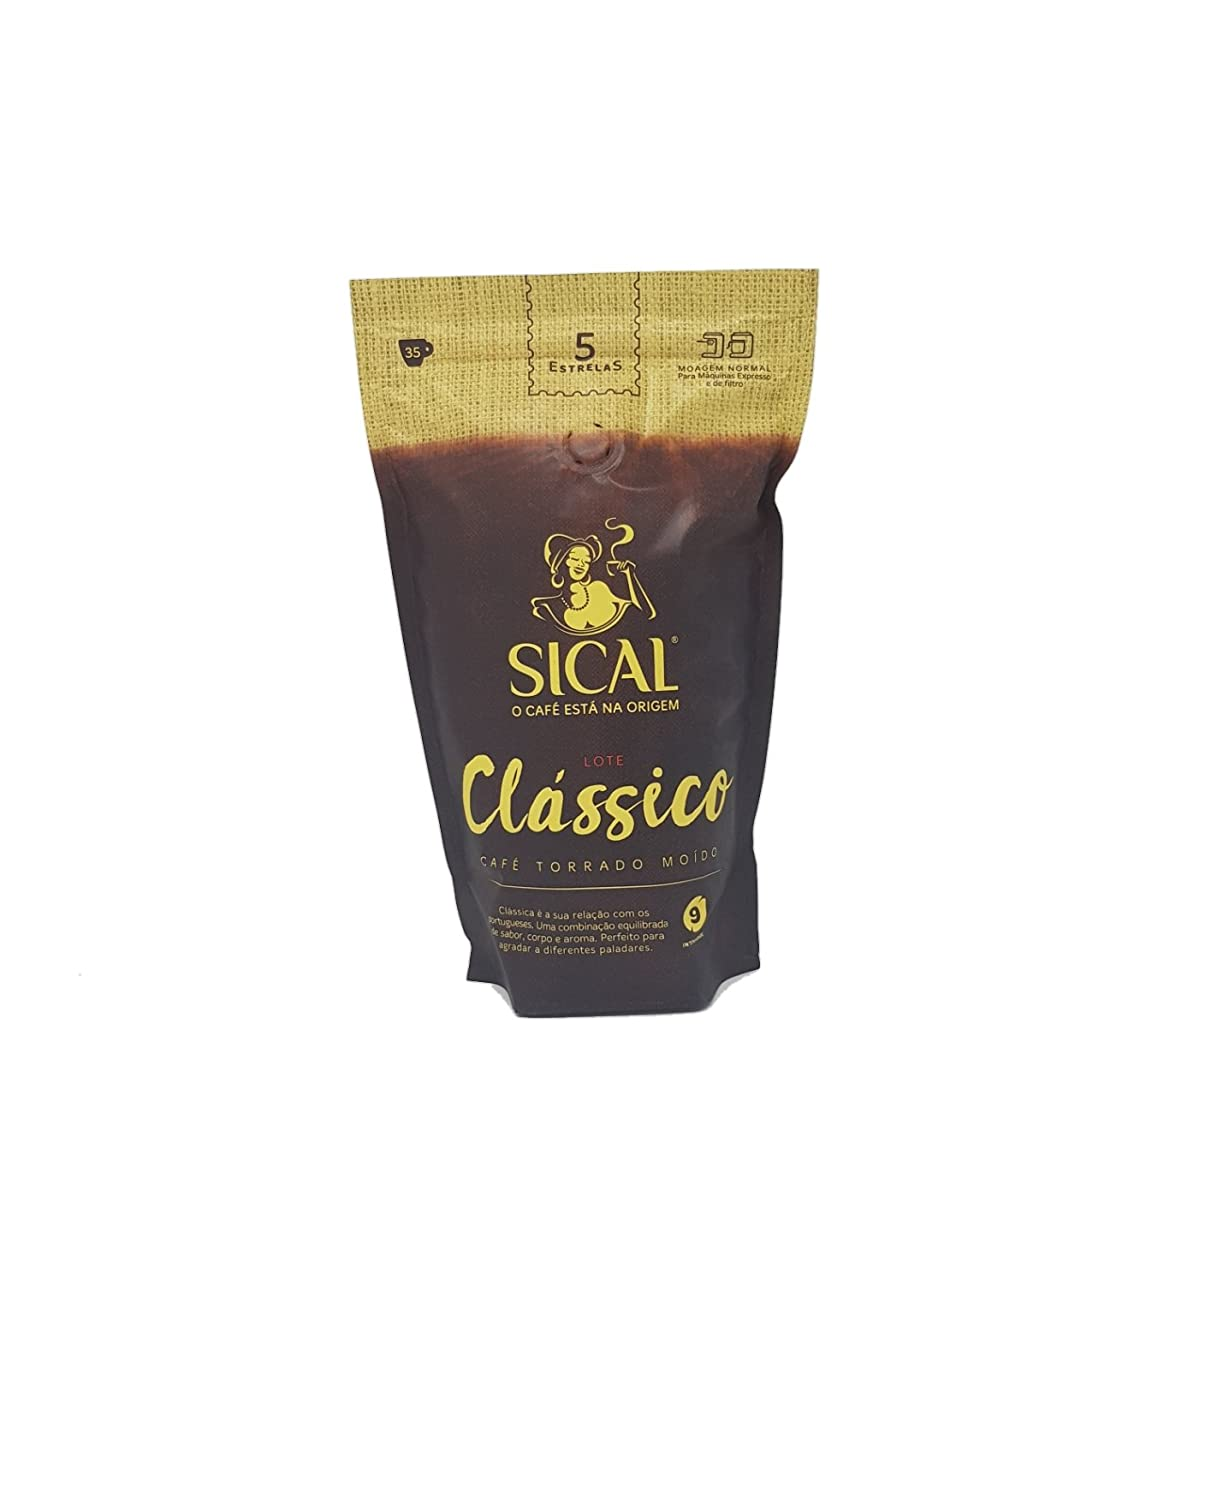 Amazon.com : Sical Portuguese Clasico Normal Ground Coffee Cafe 5 Estrelas 250g : Grocery & Gourmet Food